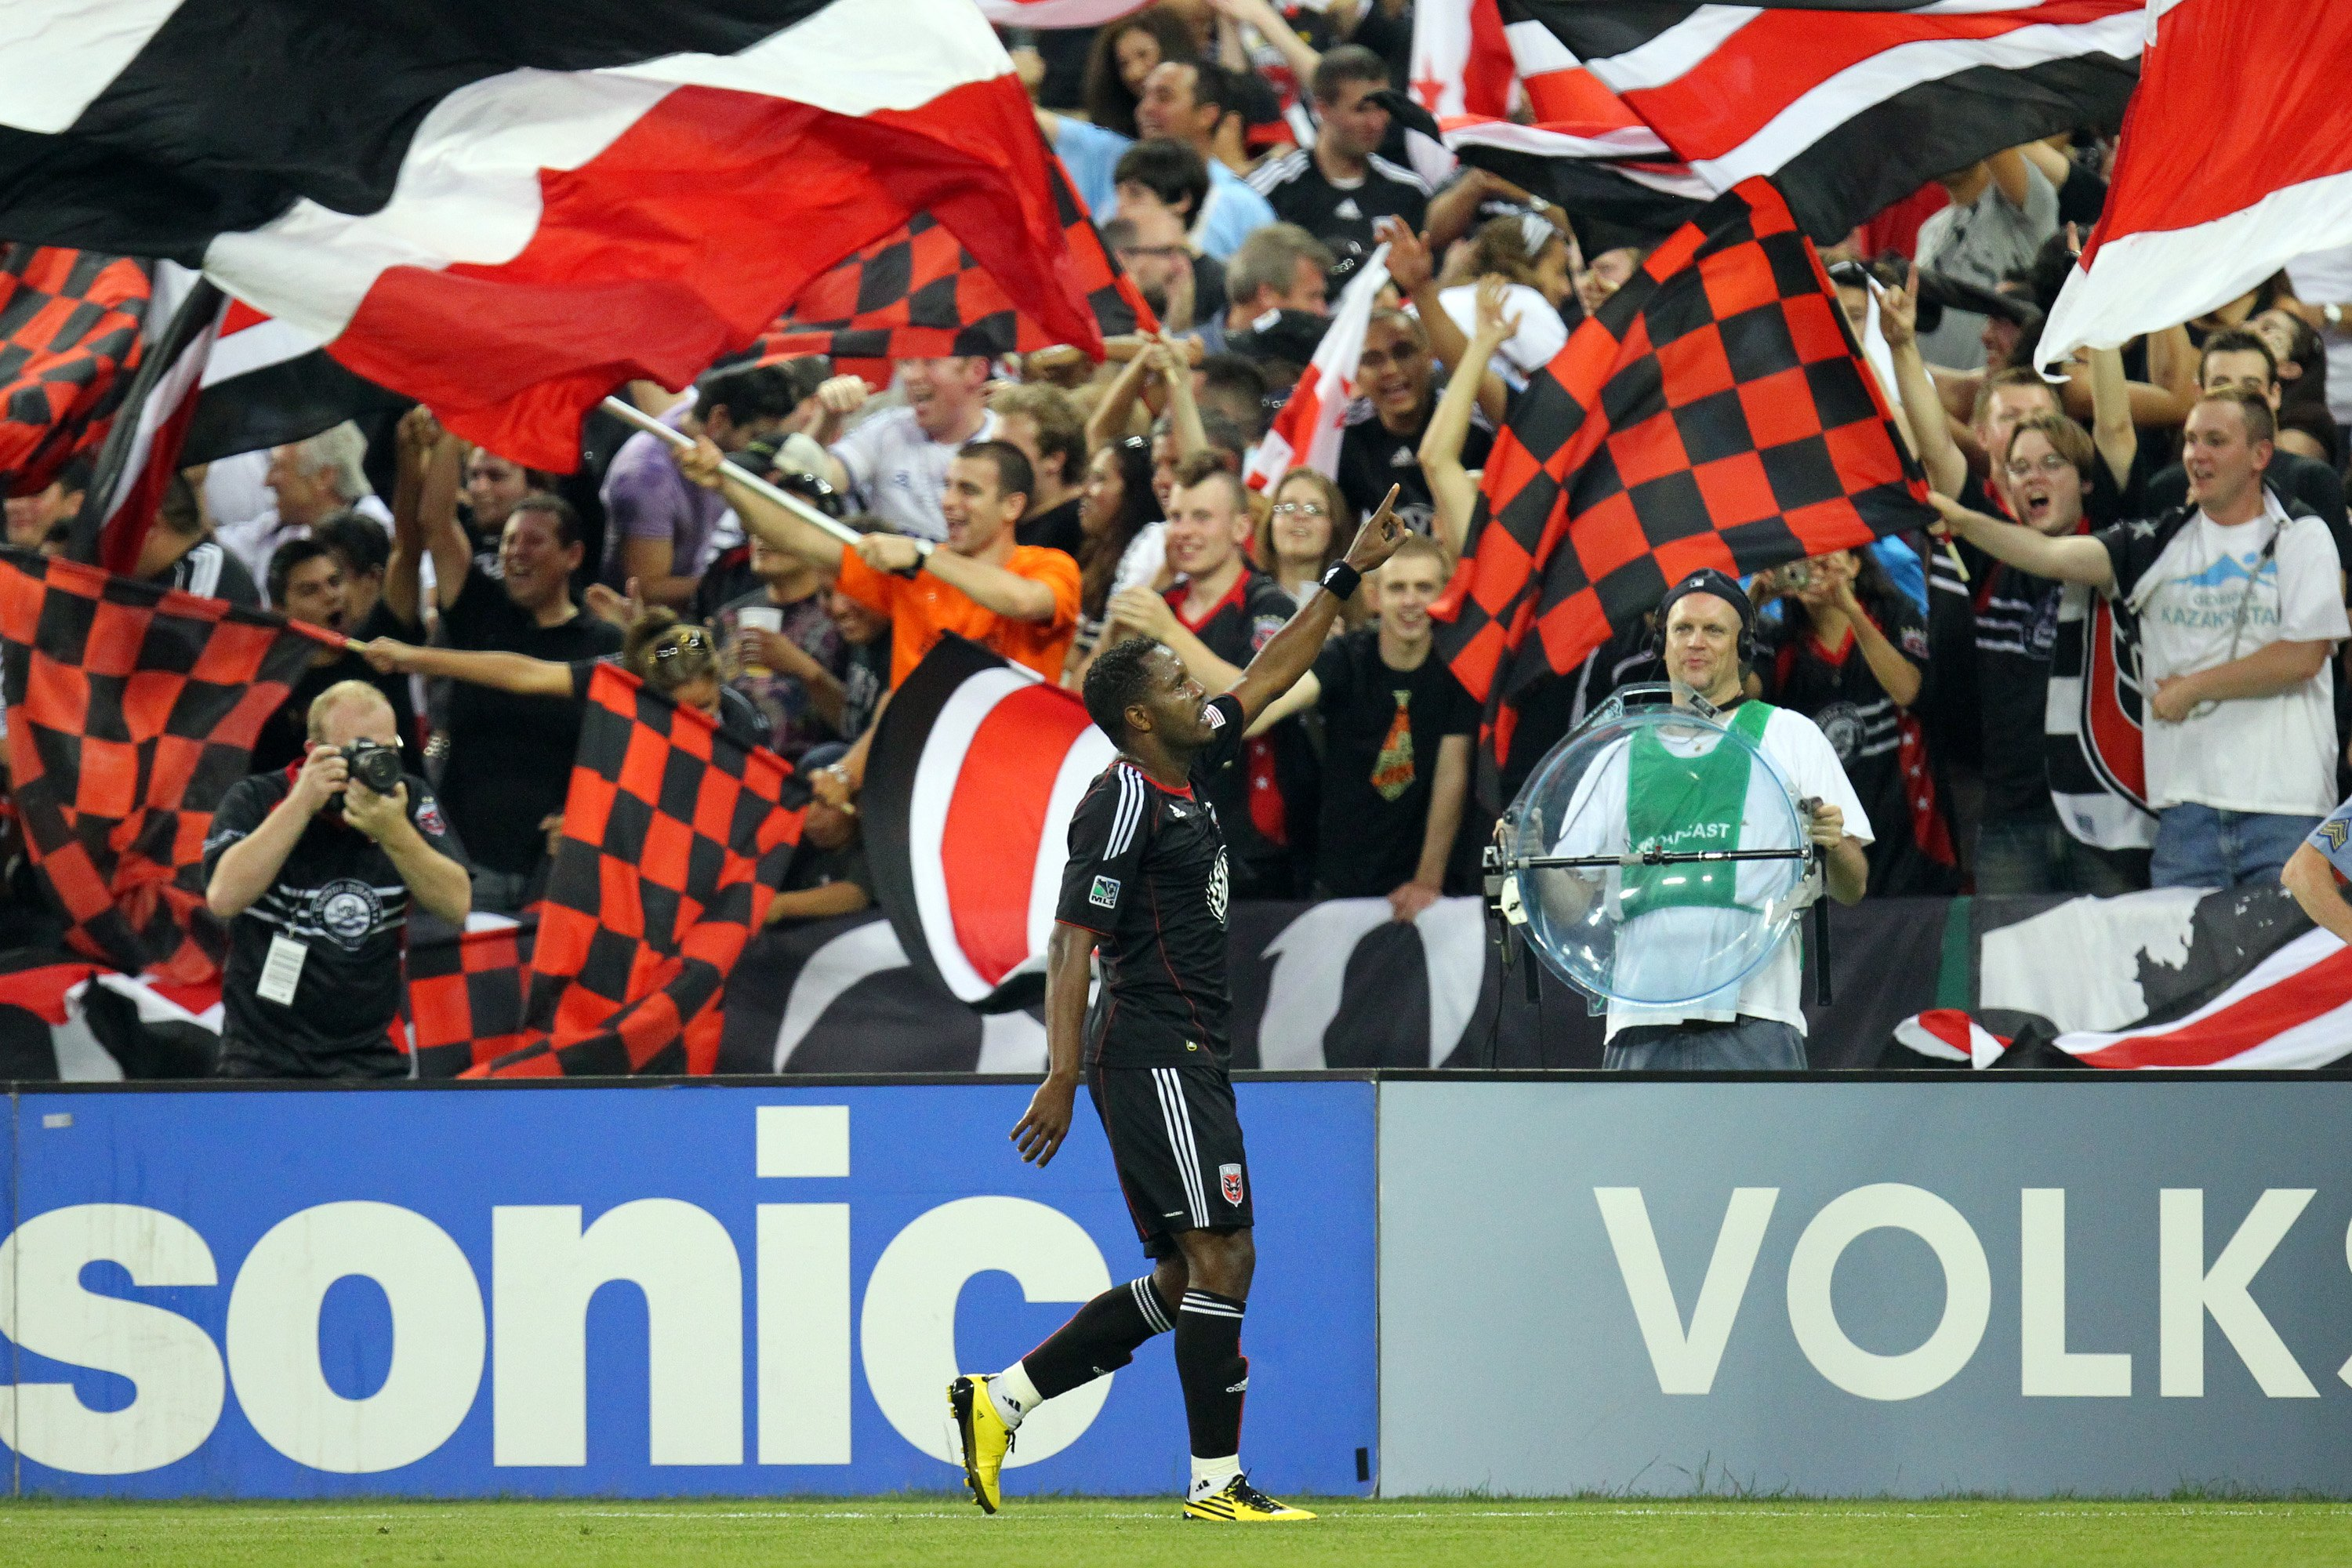 WASHINGTON - MAY 26: Luciano Emilio #11 of D.C. United celebrates after a goal against A.C. Milan at RFK Stadium on May 26, 2010 in Washington, DC. D.C. United won 3-2. (Photo by Ned Dishman/Getty Images)